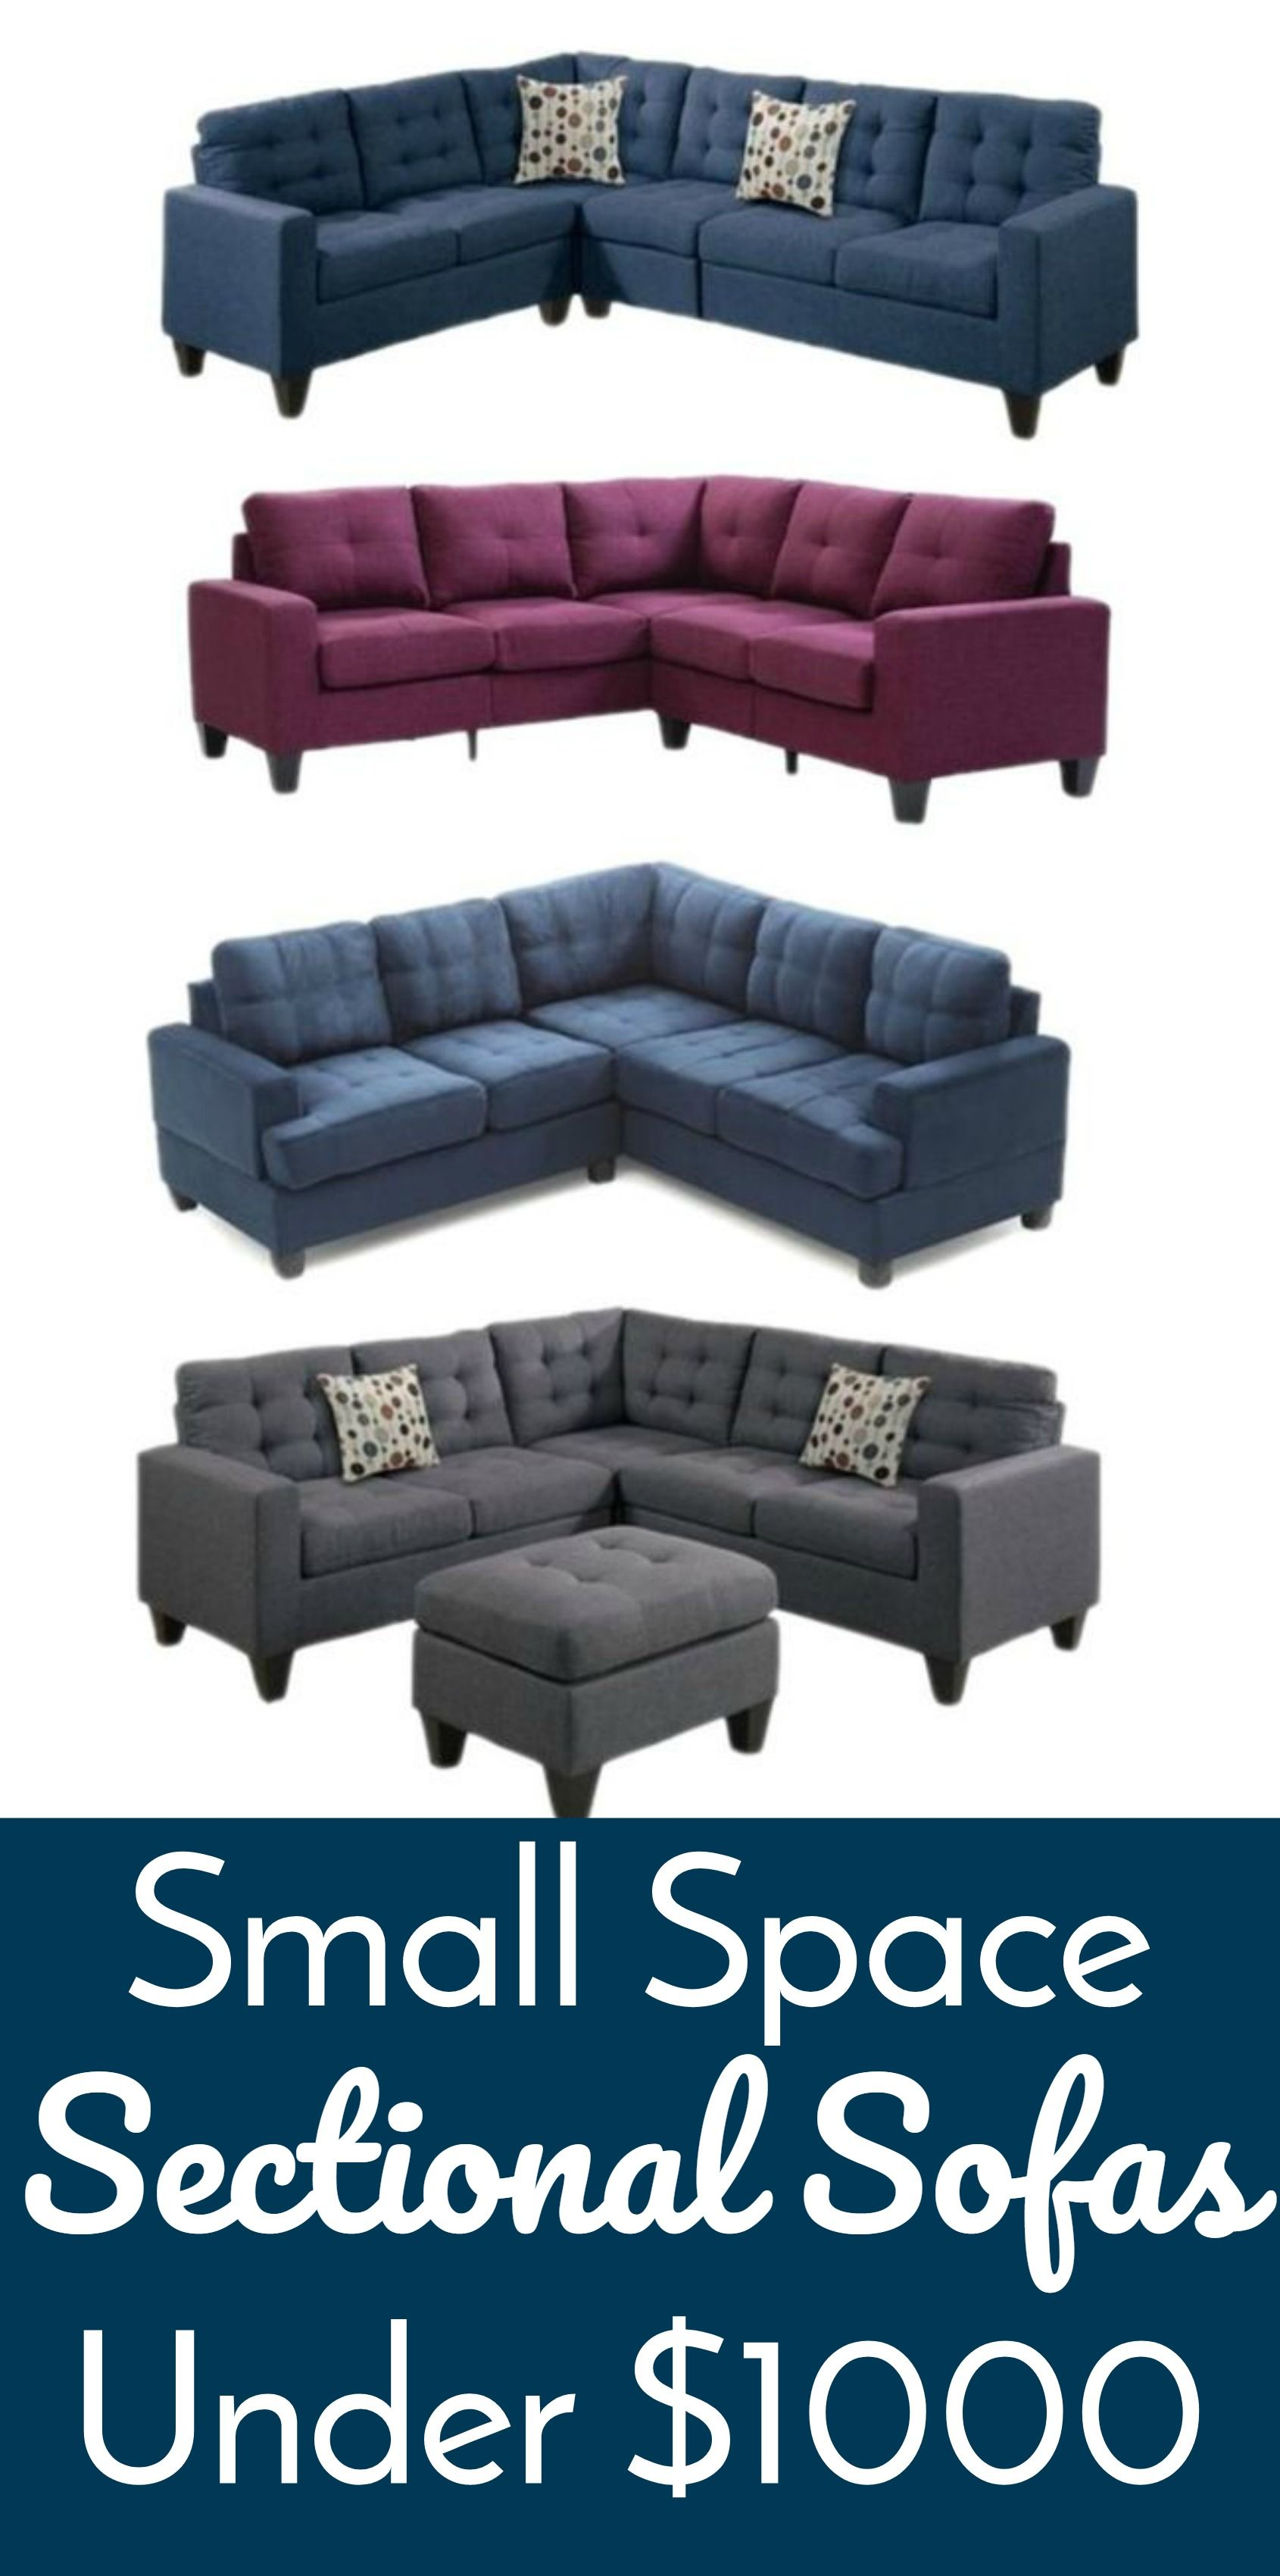 Charming Small Space Sectional Sofas Under $1000